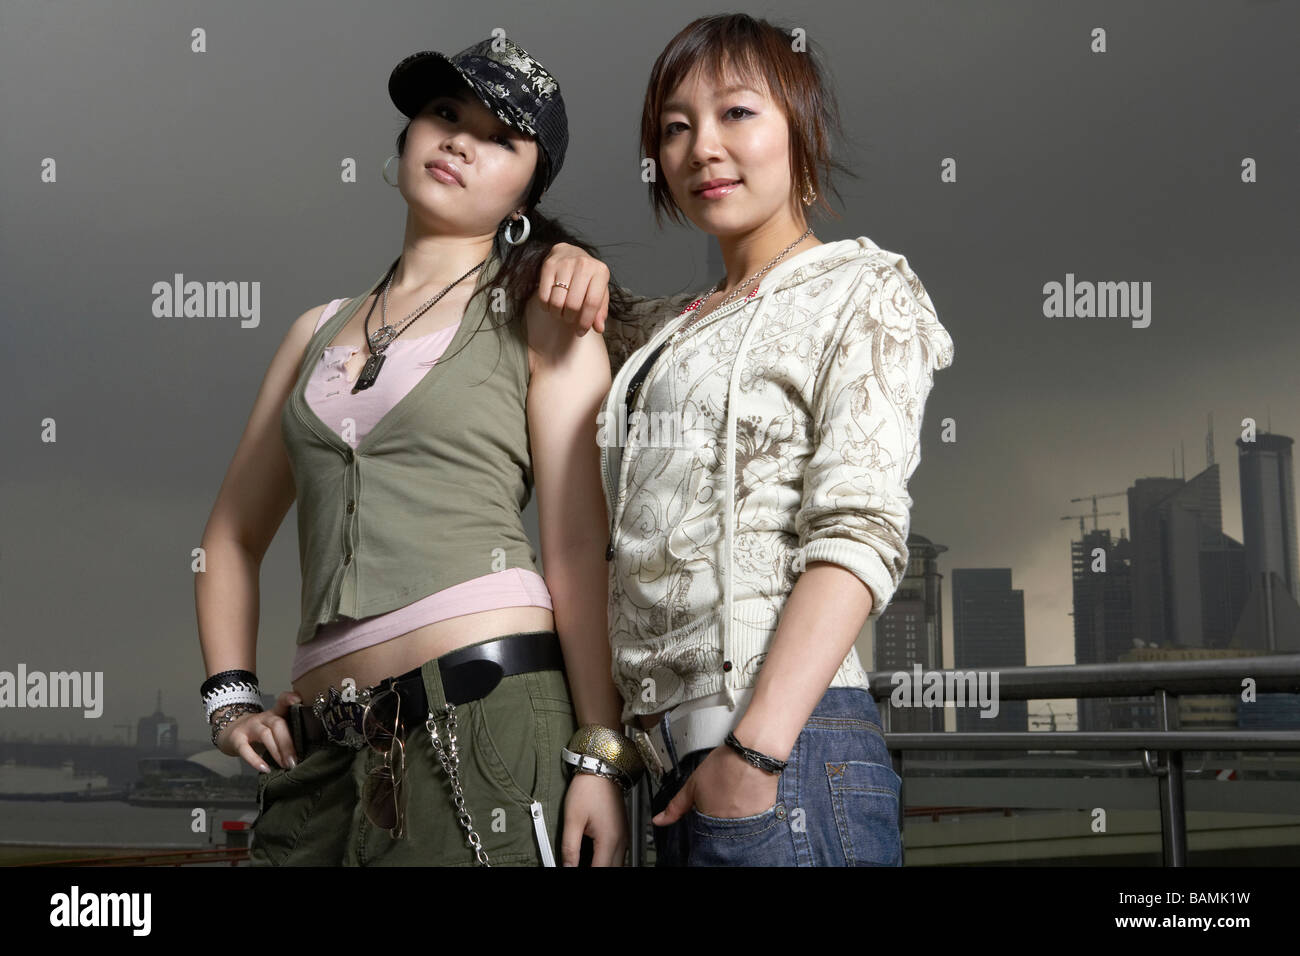 Teenage Girls With Cool Attitude In Shanghai Stock Photo 23810917